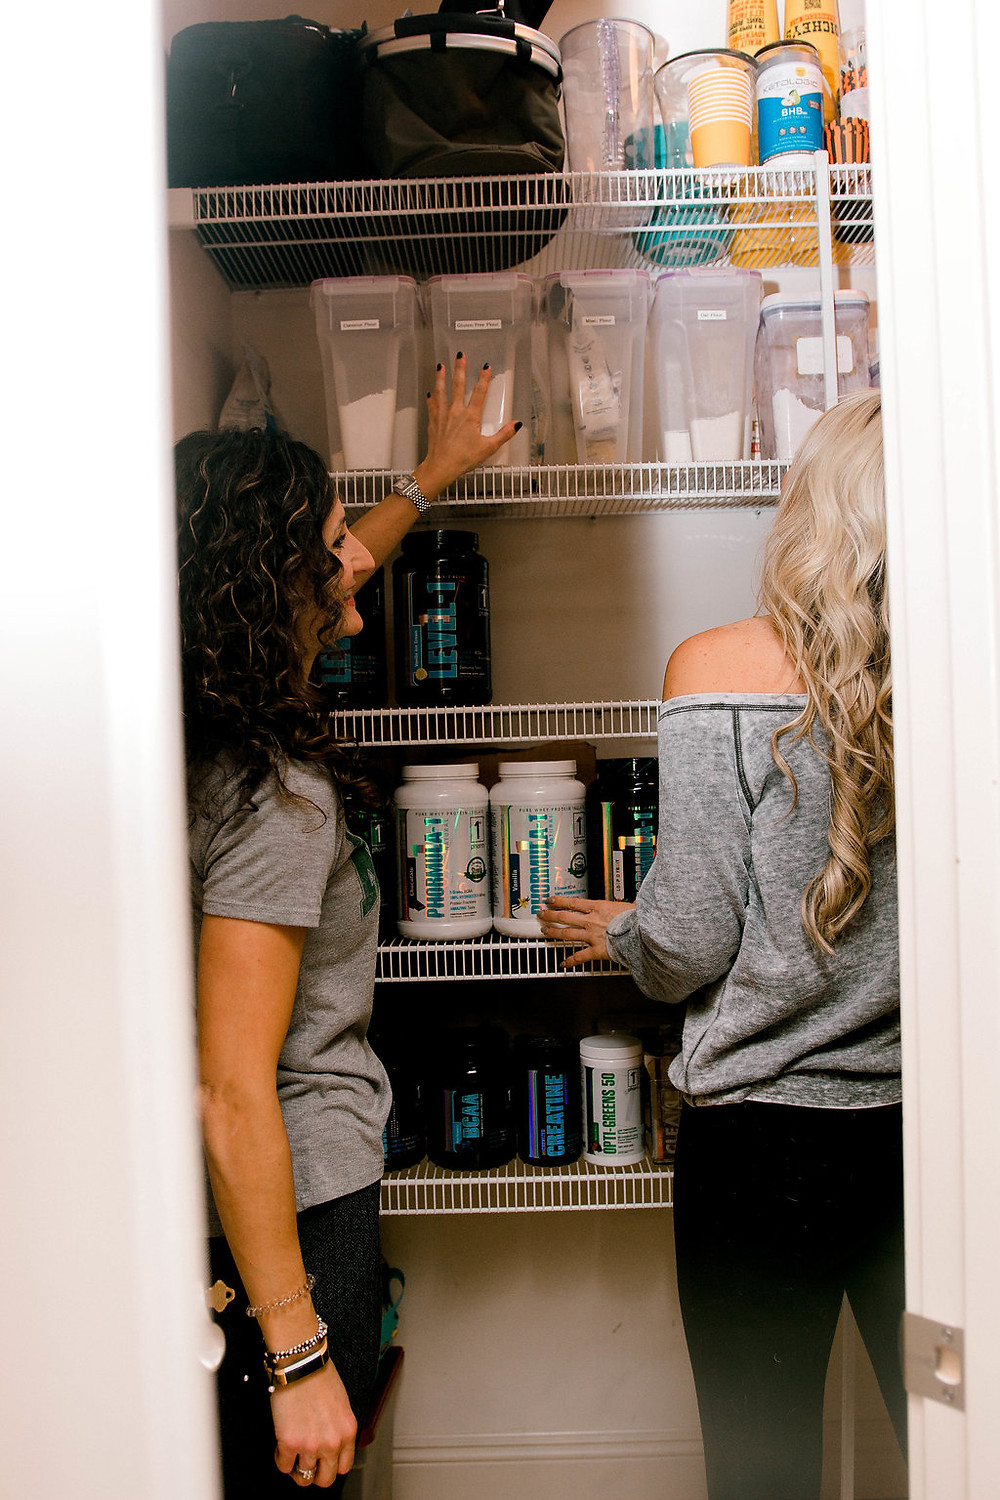 Organizing the pantry for a healthy New Year